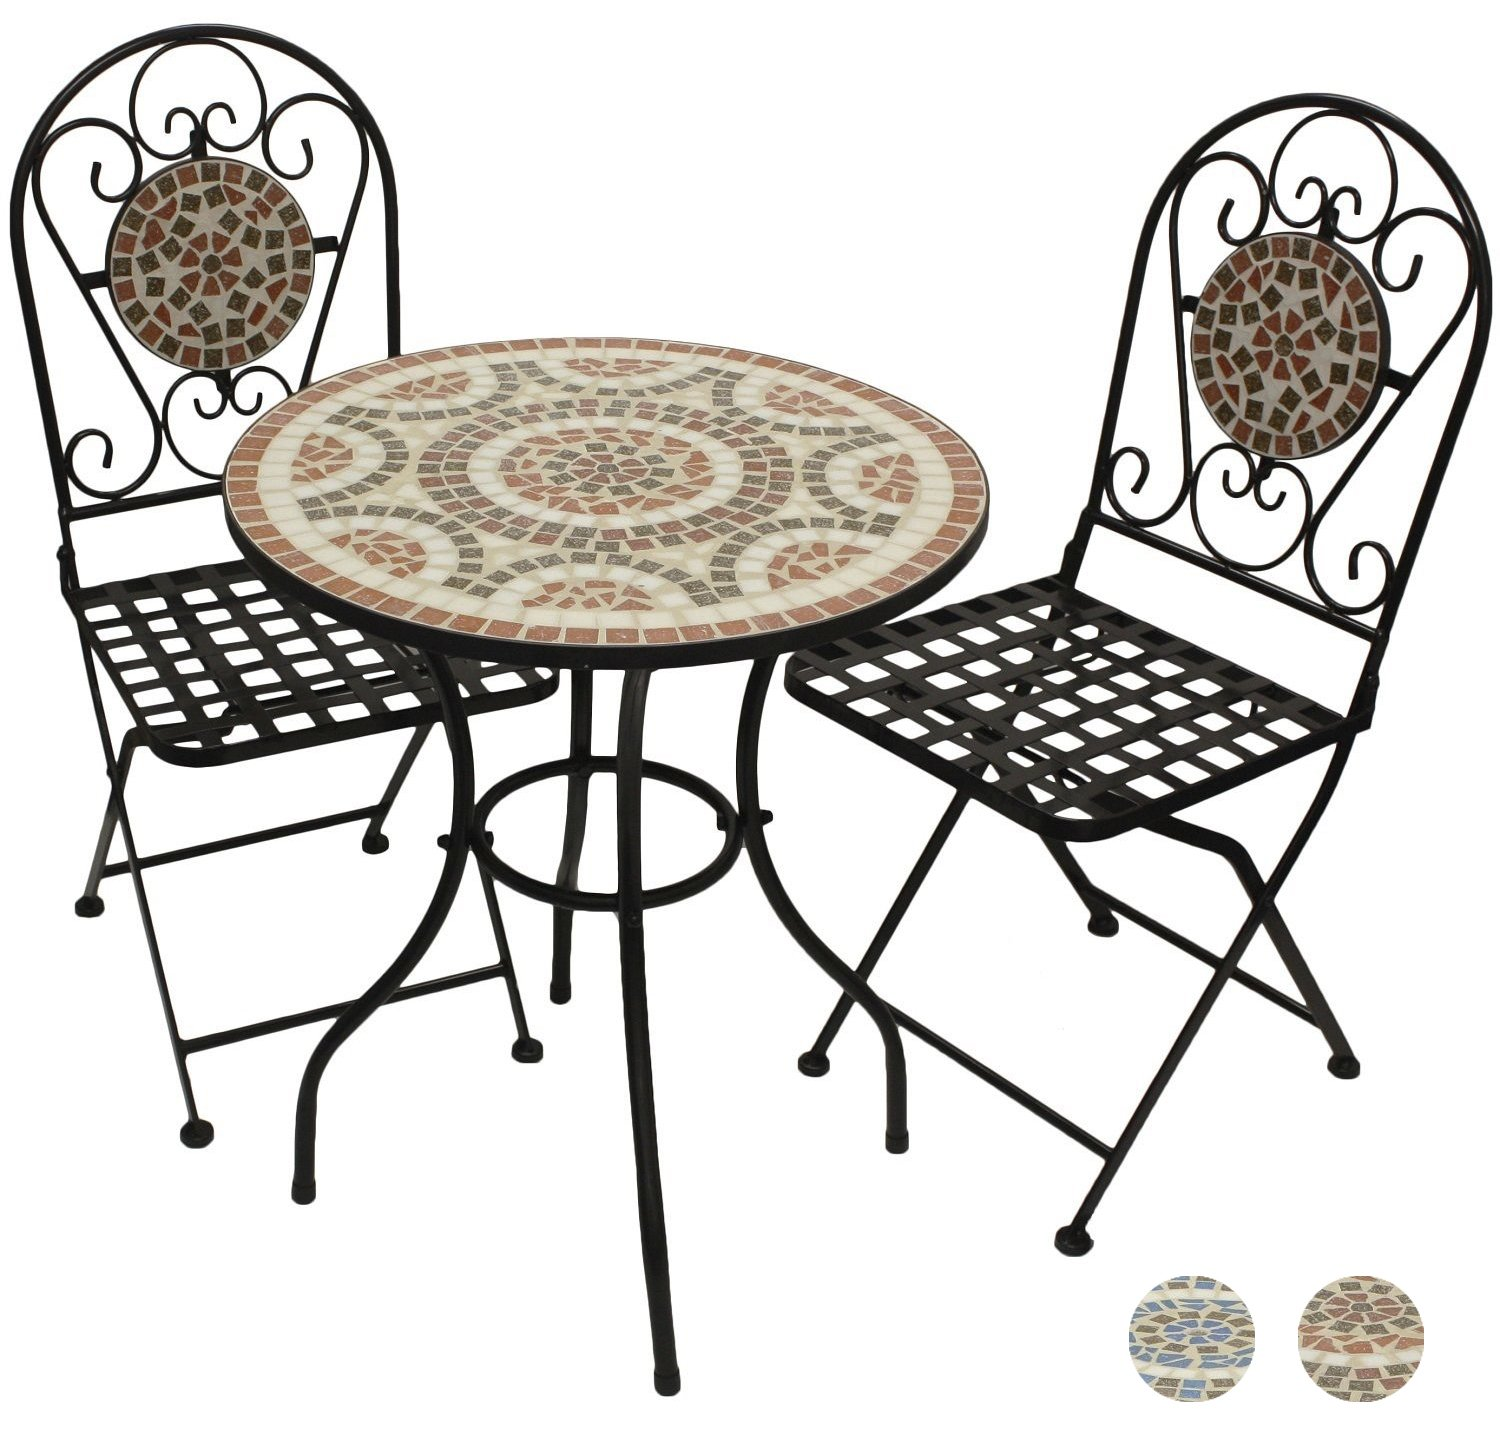 Woodside Blue Mosaic Garden Table And Folding Chair Set Outdoor Dining  Furniture: Amazon.co.uk: Garden U0026 Outdoors Part 56